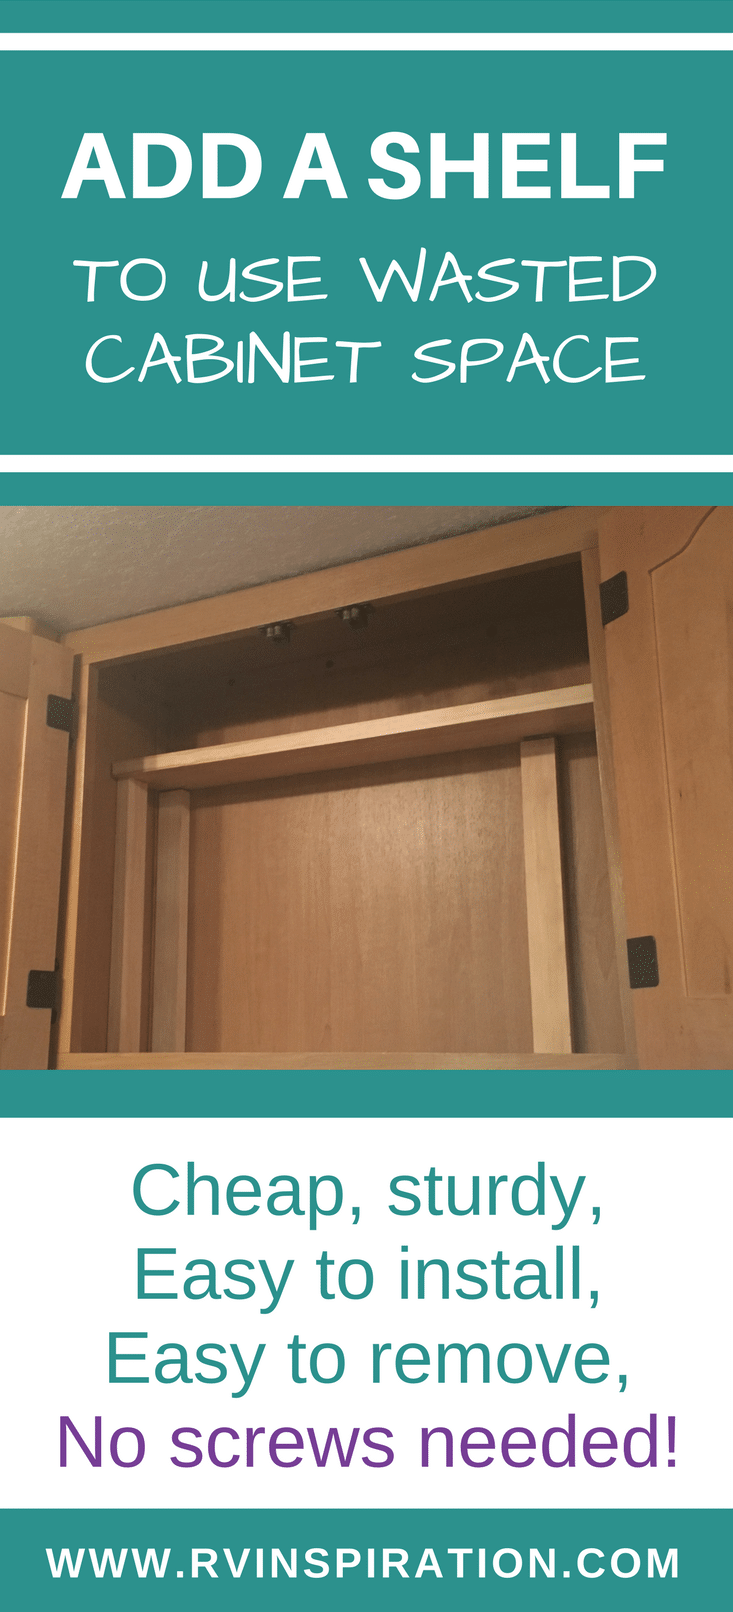 Add an extra shelf to organize the cabinets in your RV kitchen, bathroom, or closet with this cheap, easy, removable idea.